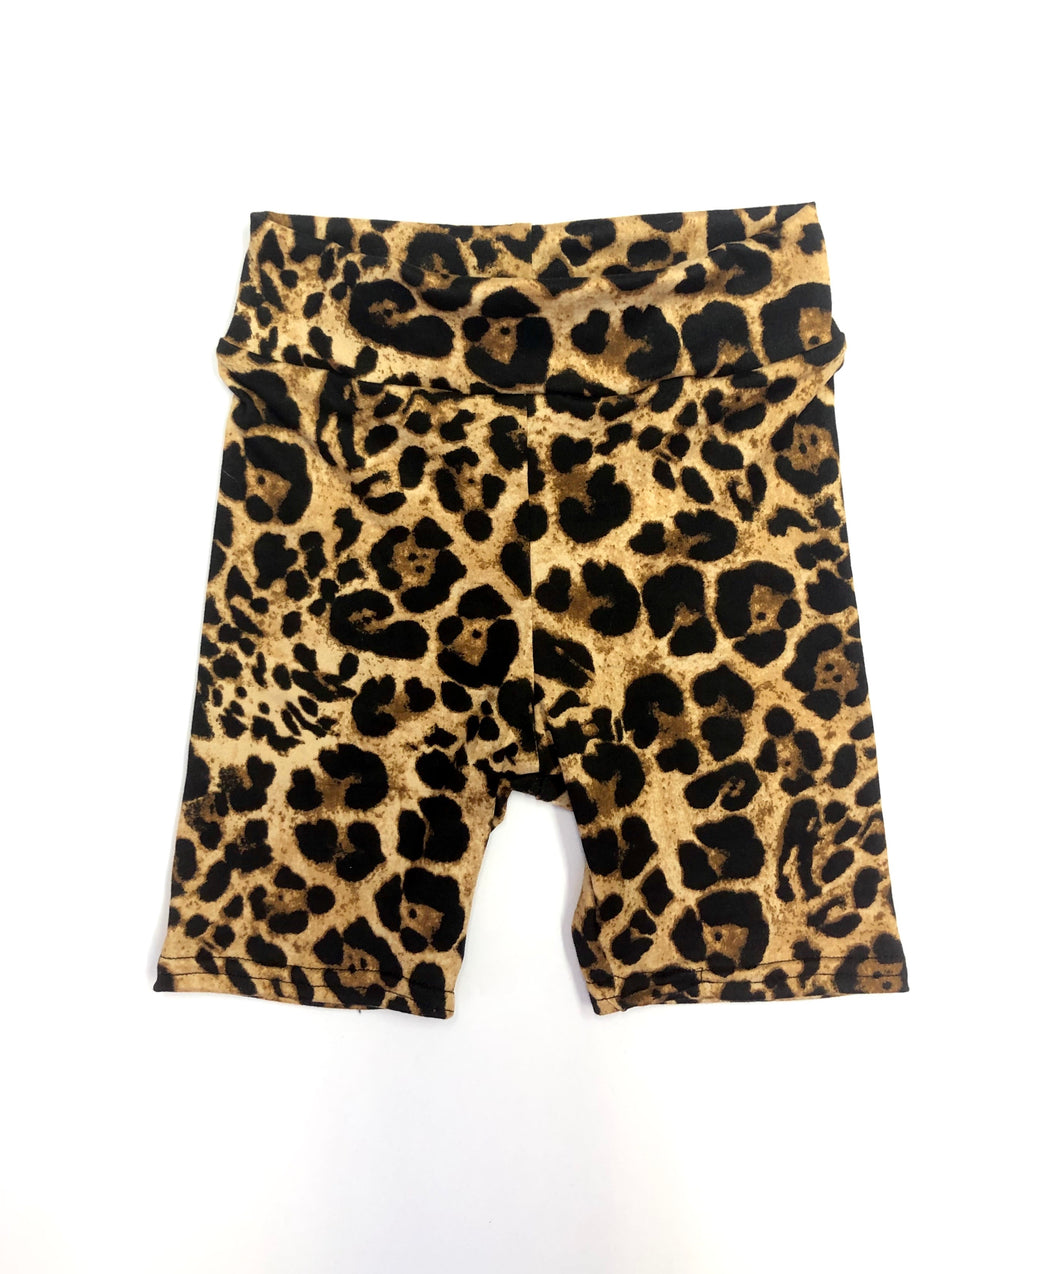 Leopard Biker Shorts (all sizes)